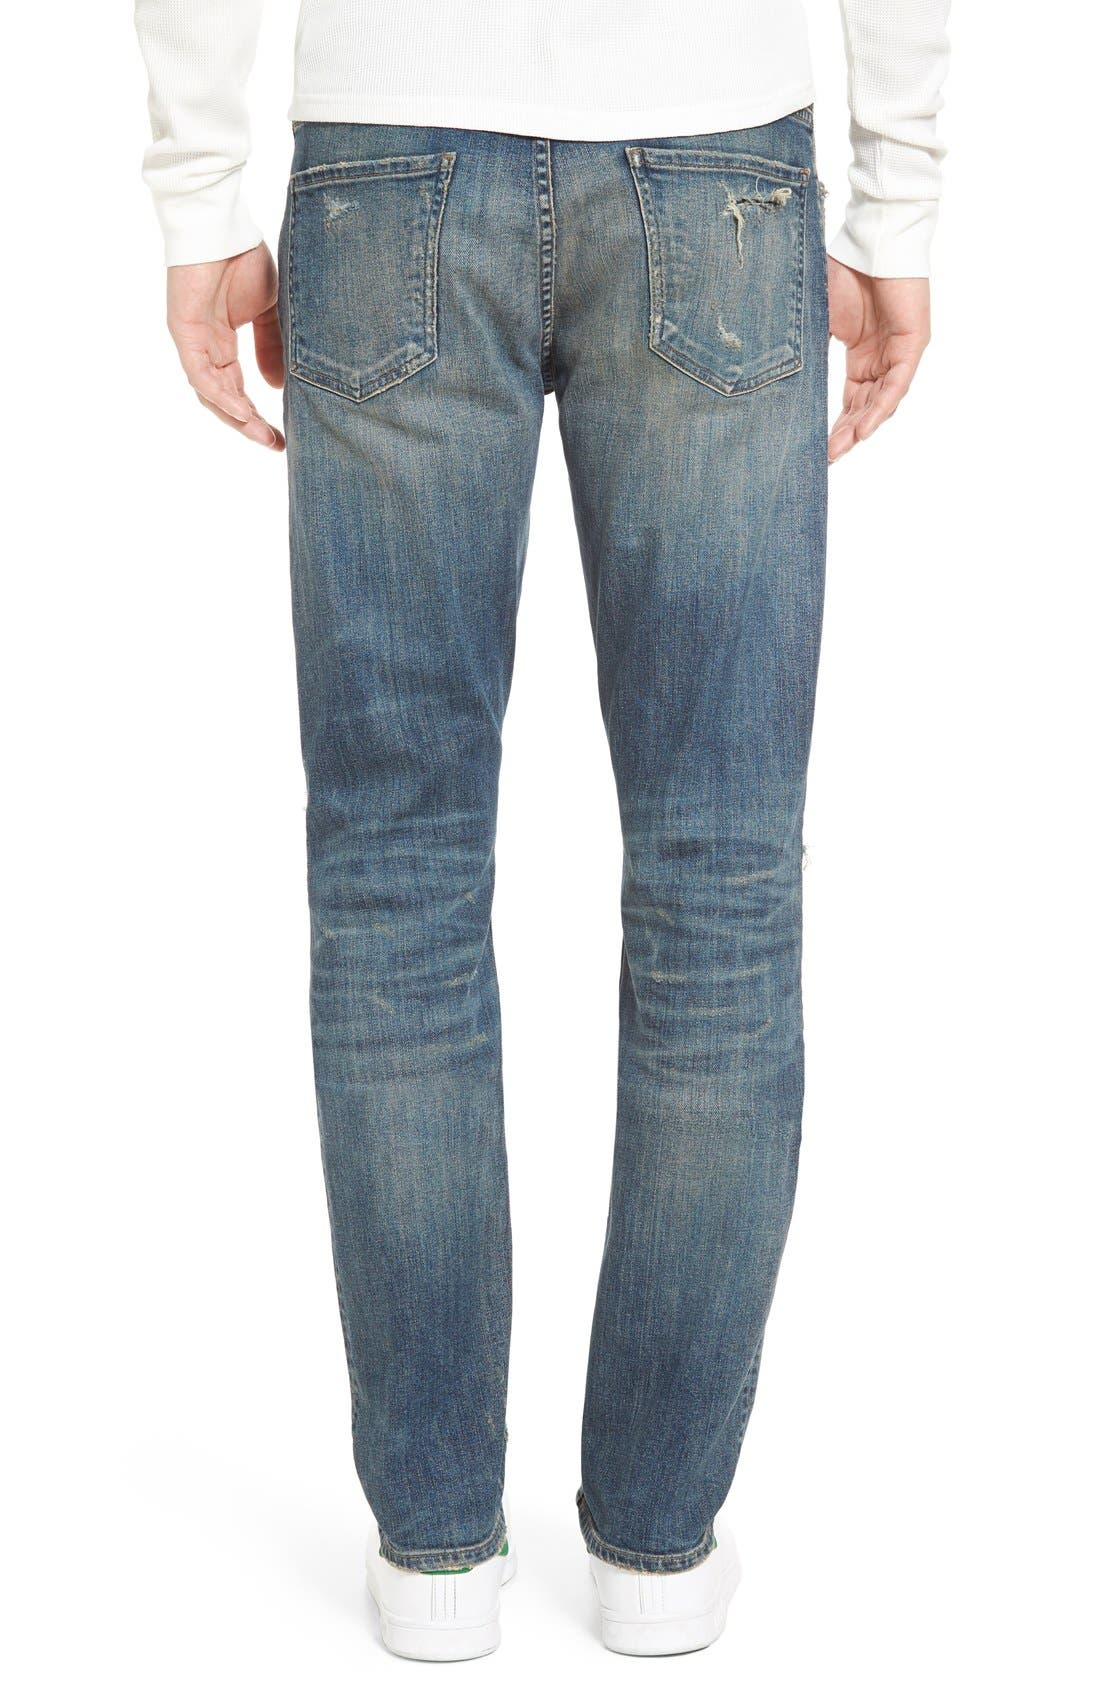 Bowery Slim Fit Jeans,                             Alternate thumbnail 4, color,